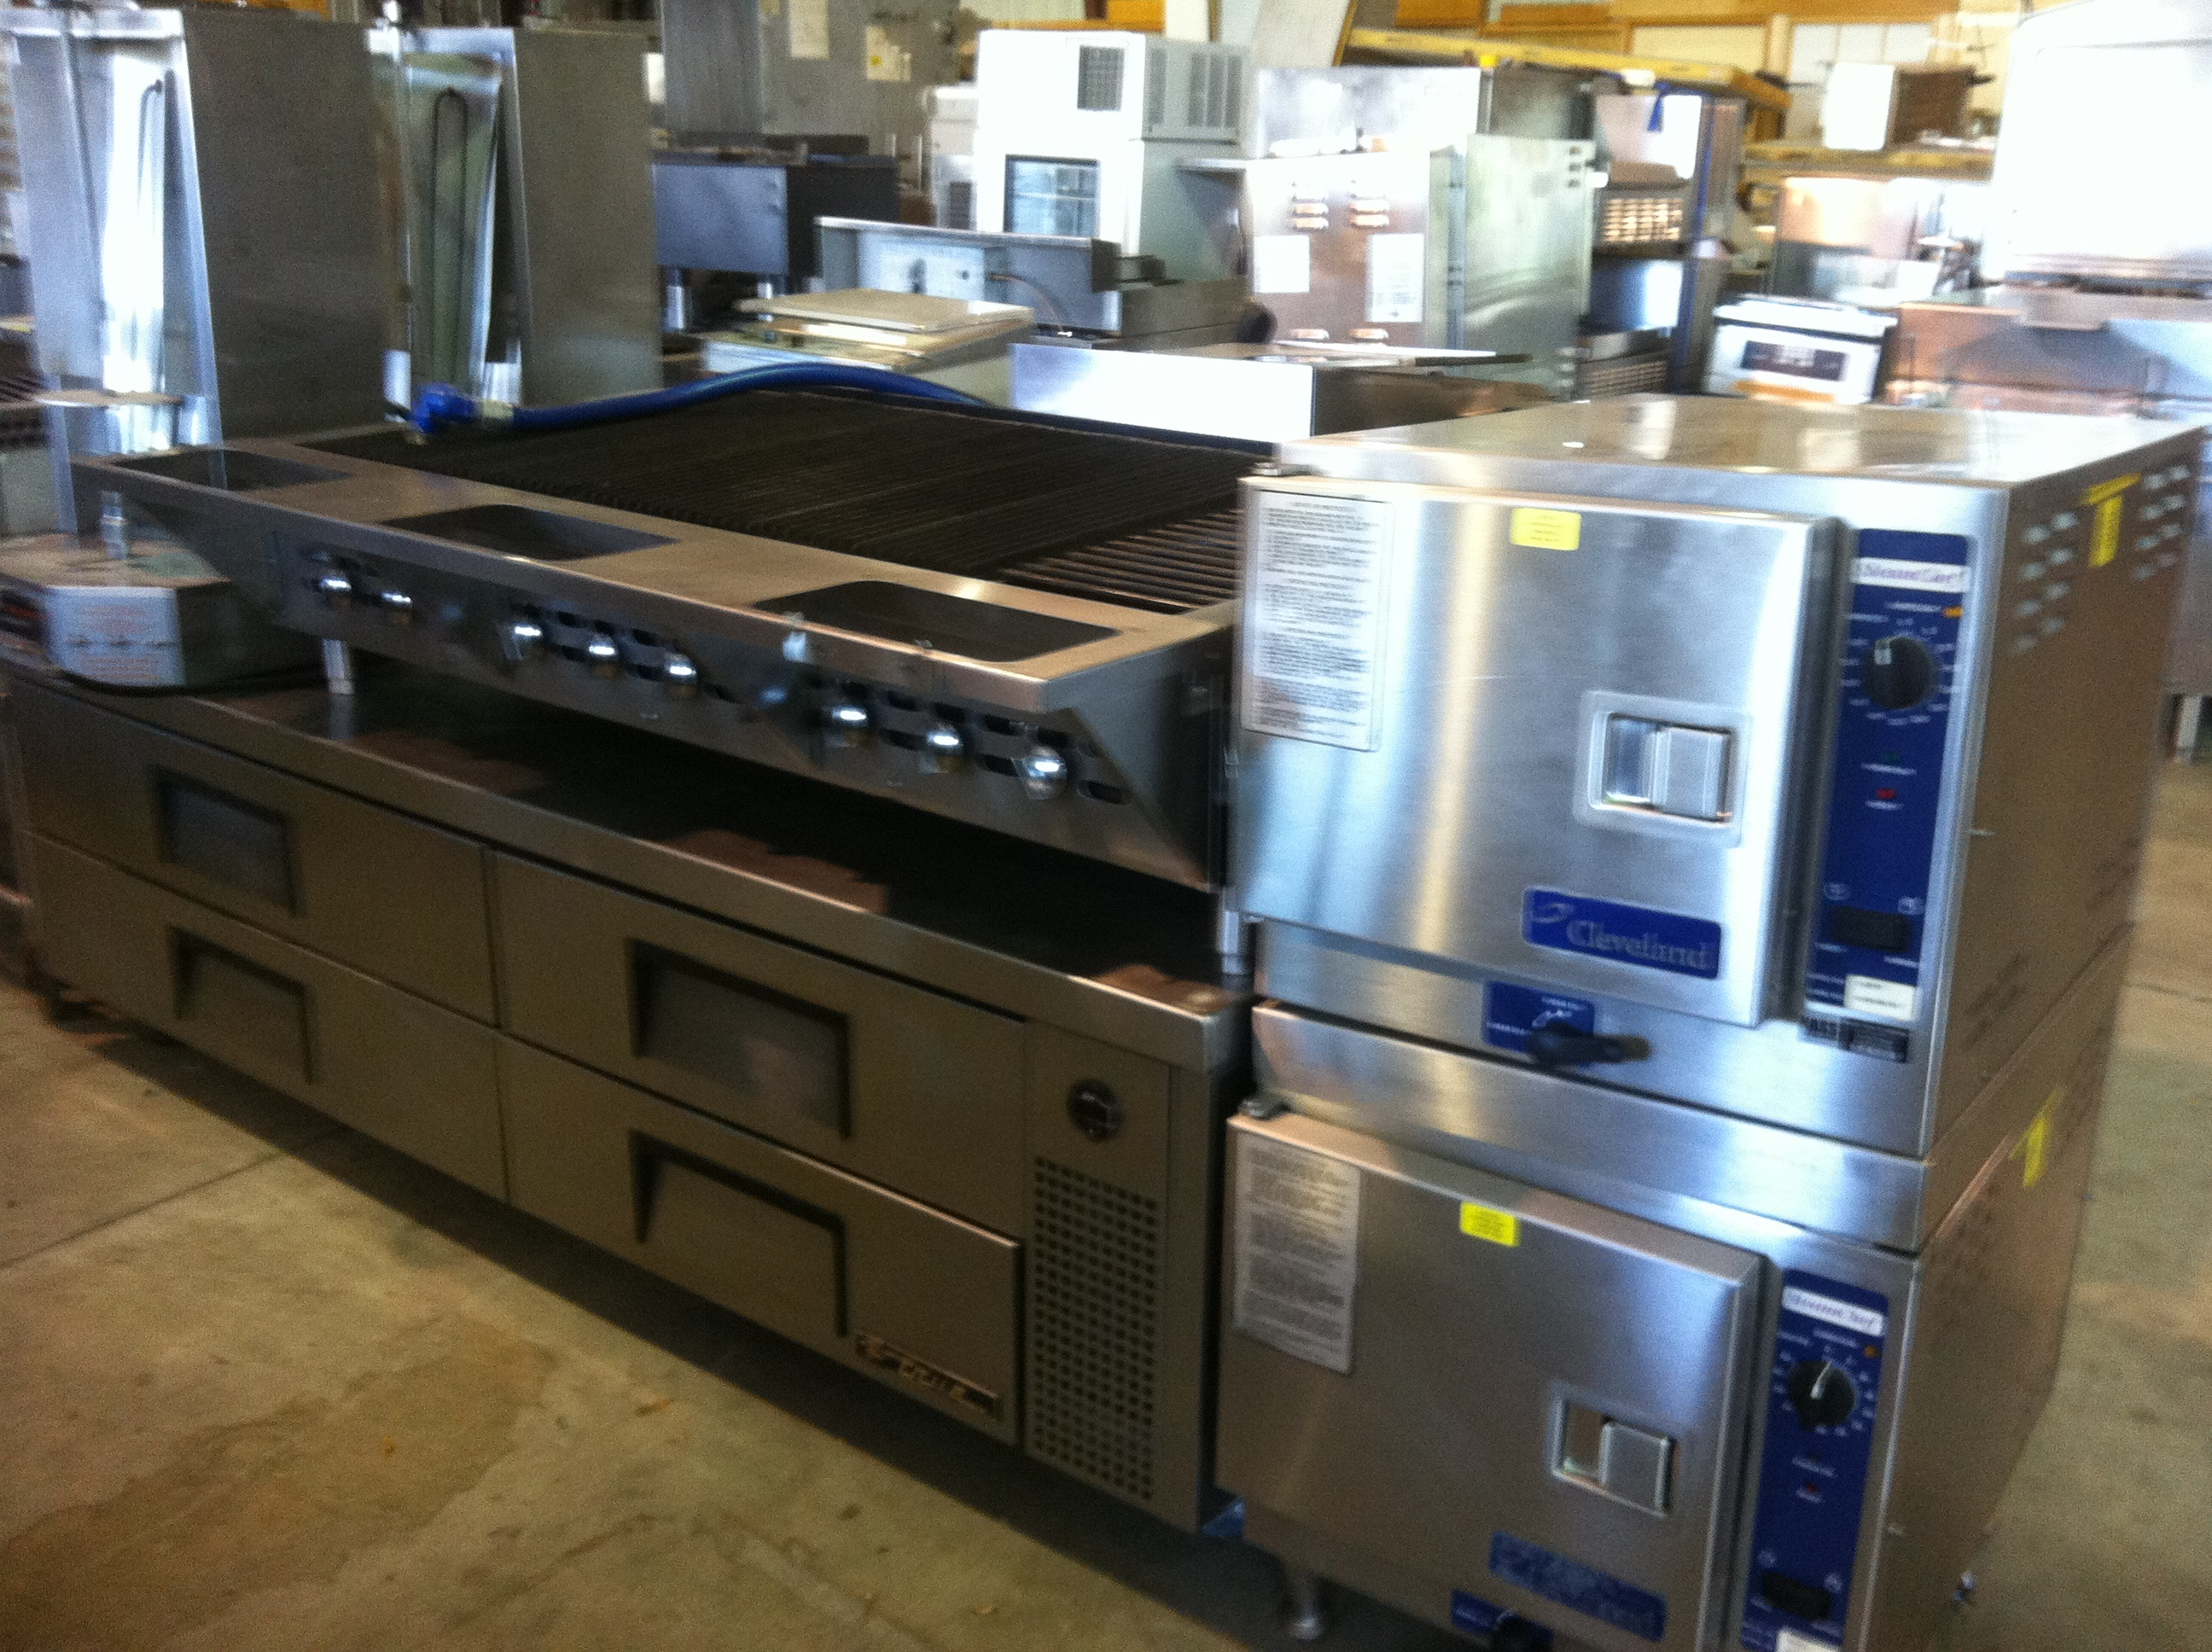 Used Outdoor Kitchen Equipment For Sale